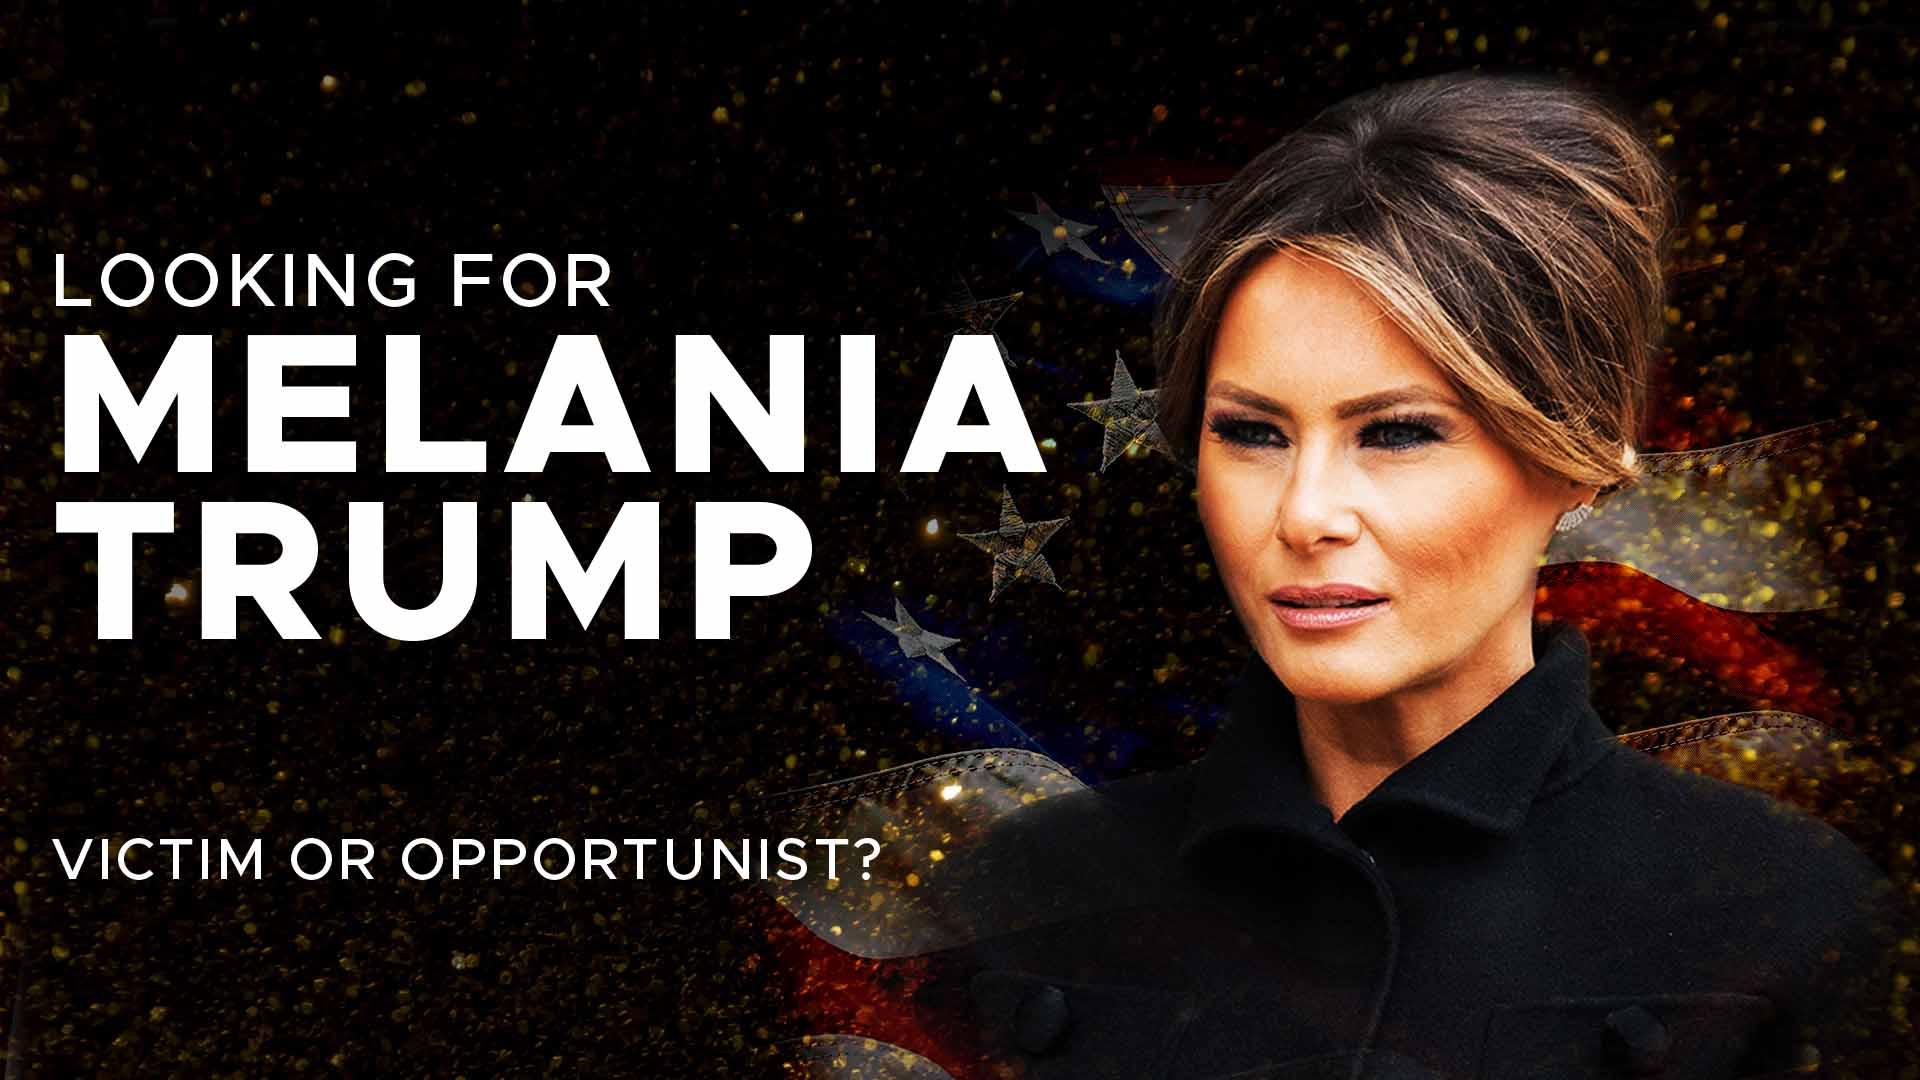 Looking for Melania Trump